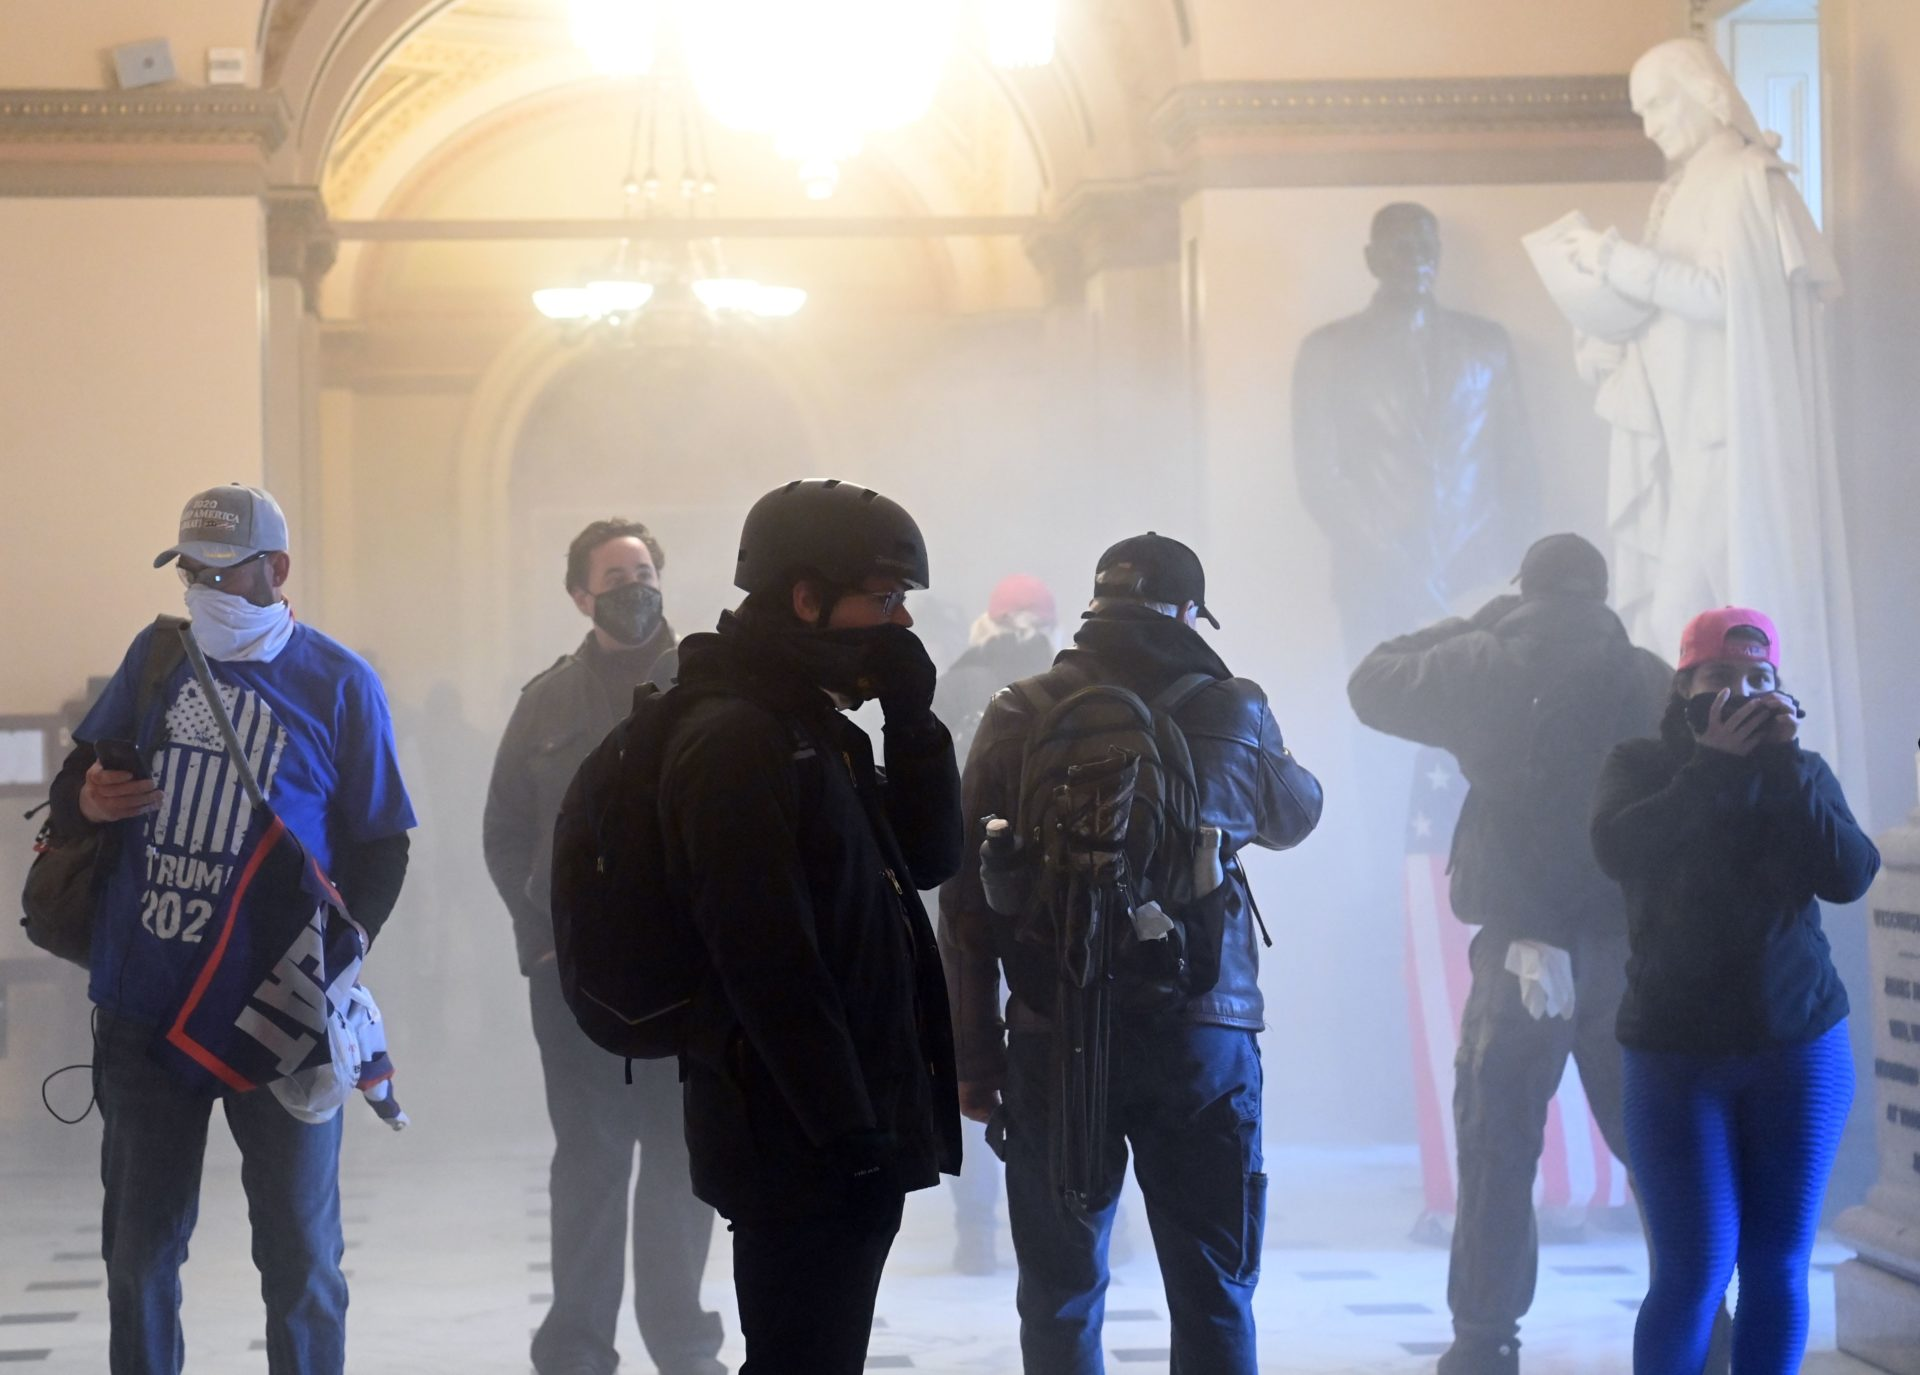 Demonstrators breached security and entered the Capitol. (Saul Loeb/AFP via Getty Images)